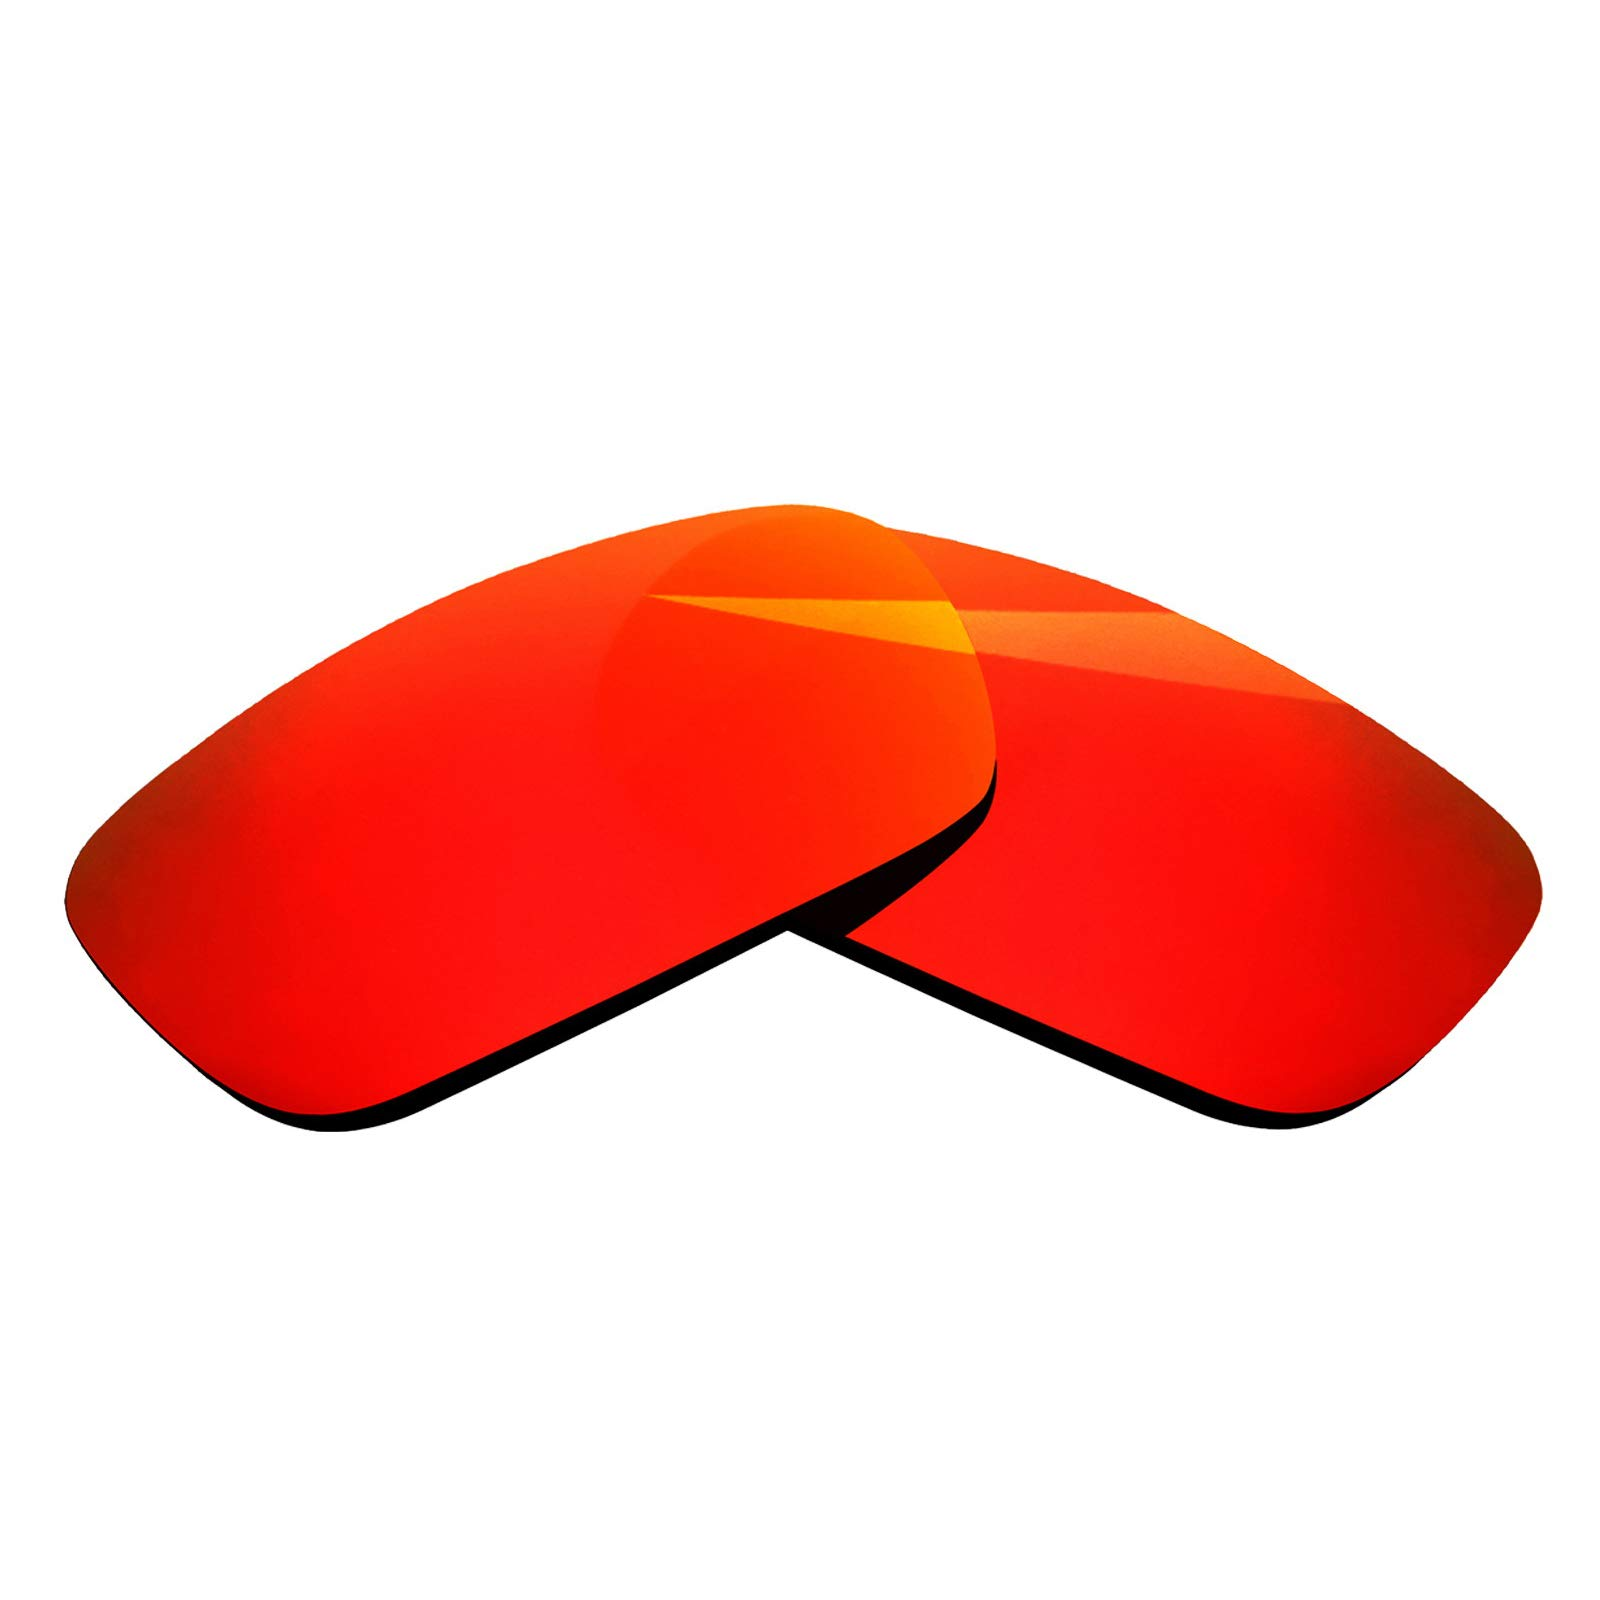 BlazerBuck Polycarbonate Polarized Replacement Lenses for Oakley Crankshaft OO9239 - Fire Red AR Coated